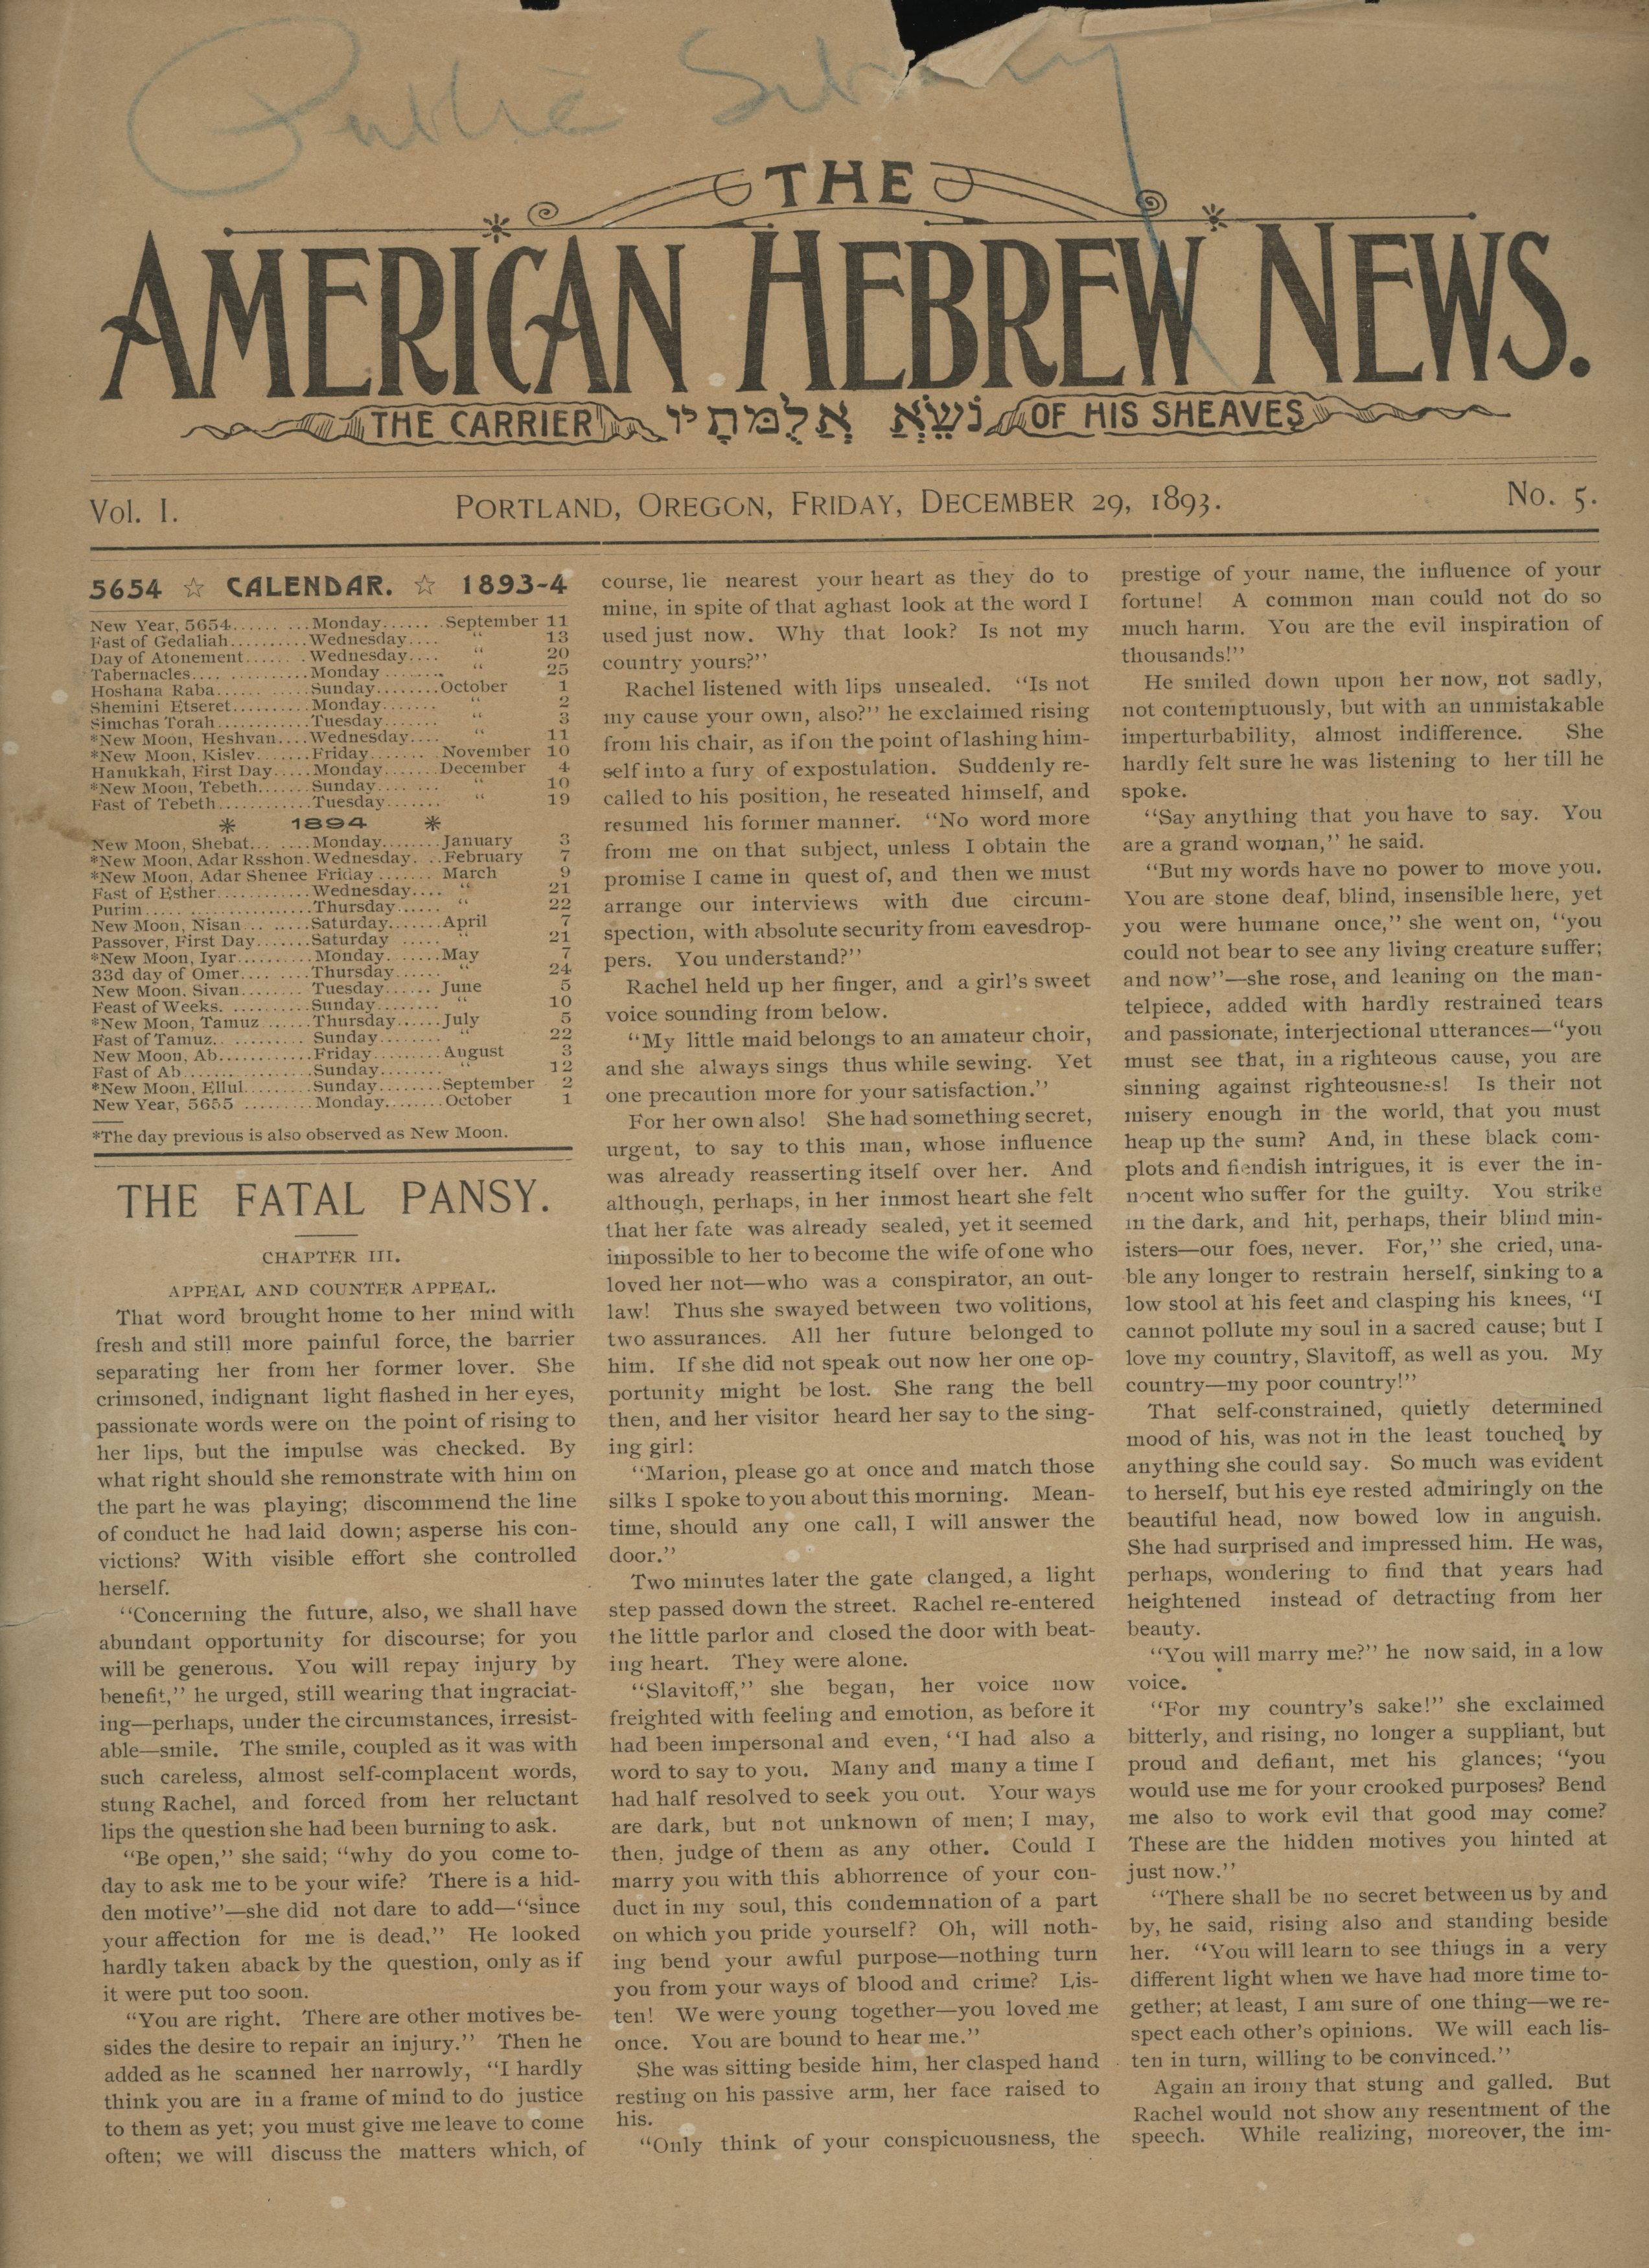 Front page of the American Hebrew News, Dec. 29, 1893, published in Portland